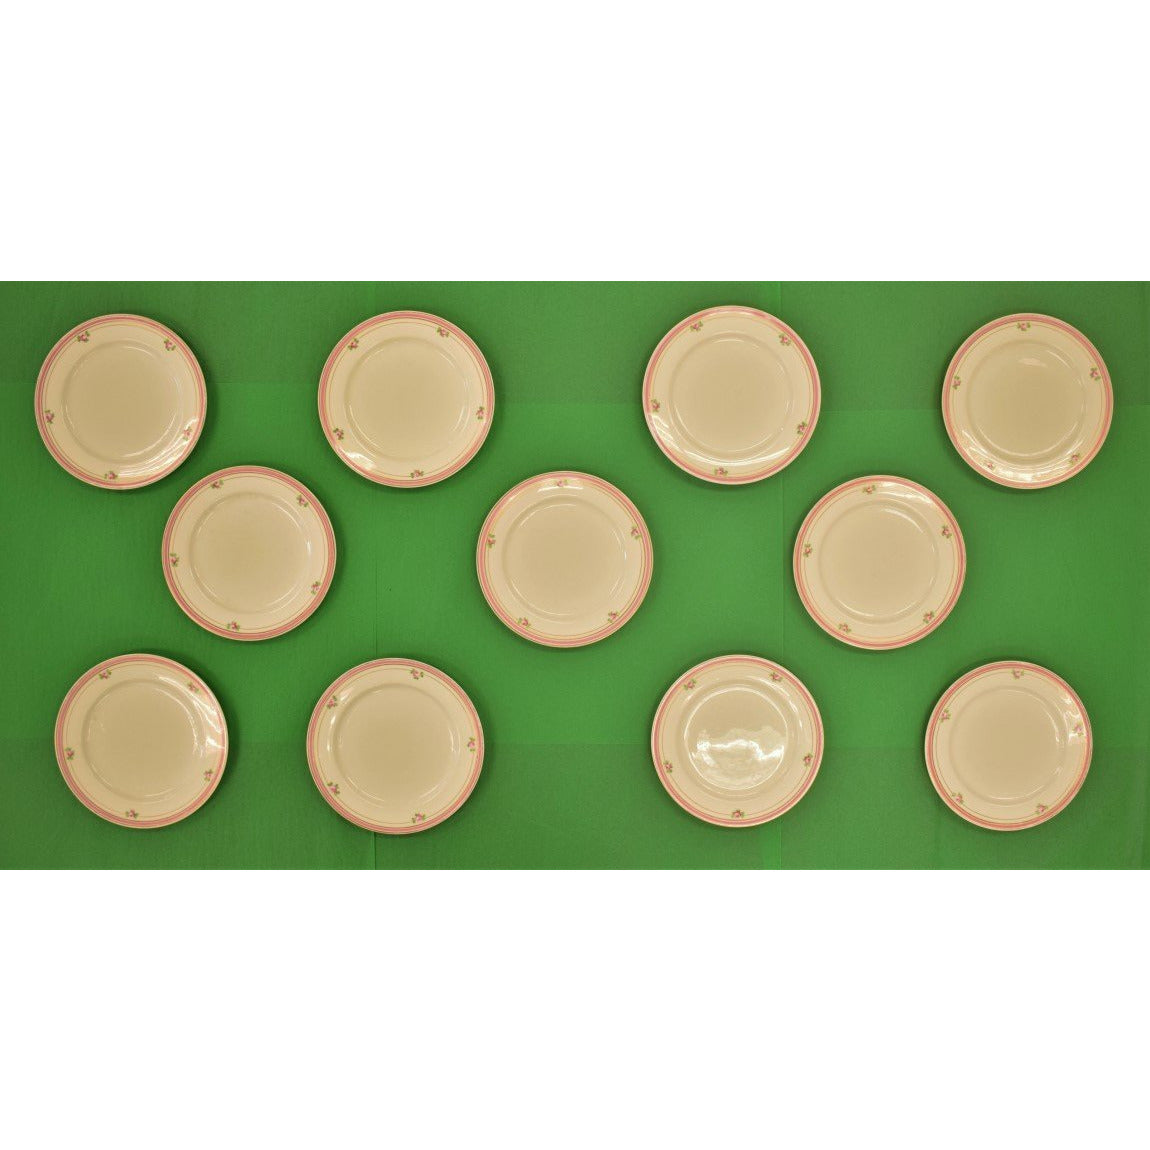 Set of 12 Lenox China Salad Plates